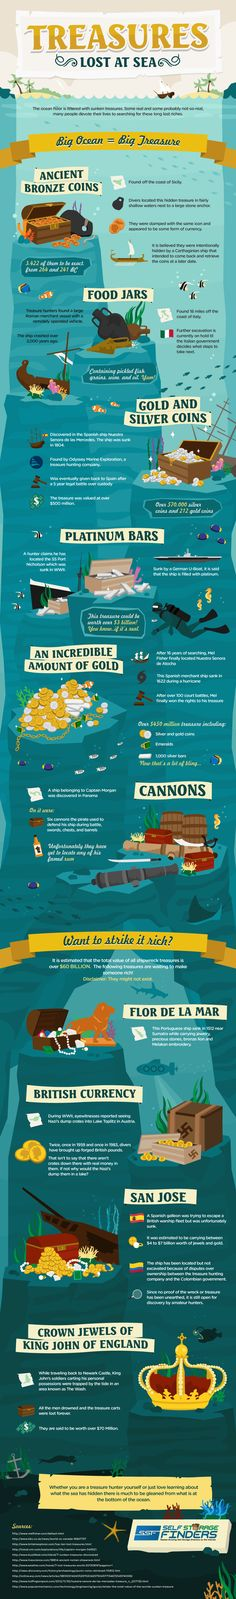 Treasures Lost at Sea Infographic, want to find some gold?